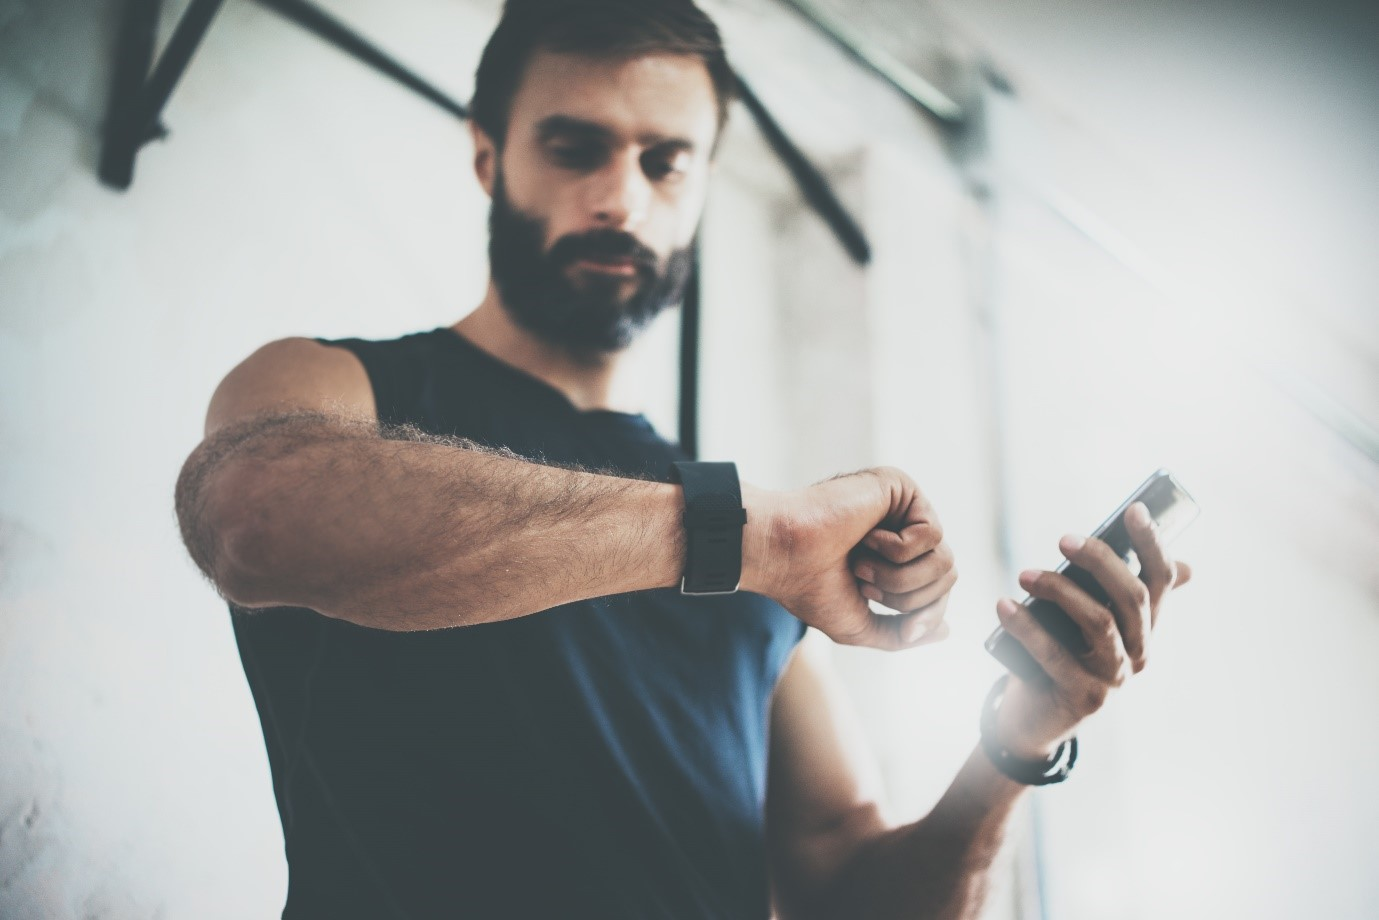 Fitness trainer checks results on watch